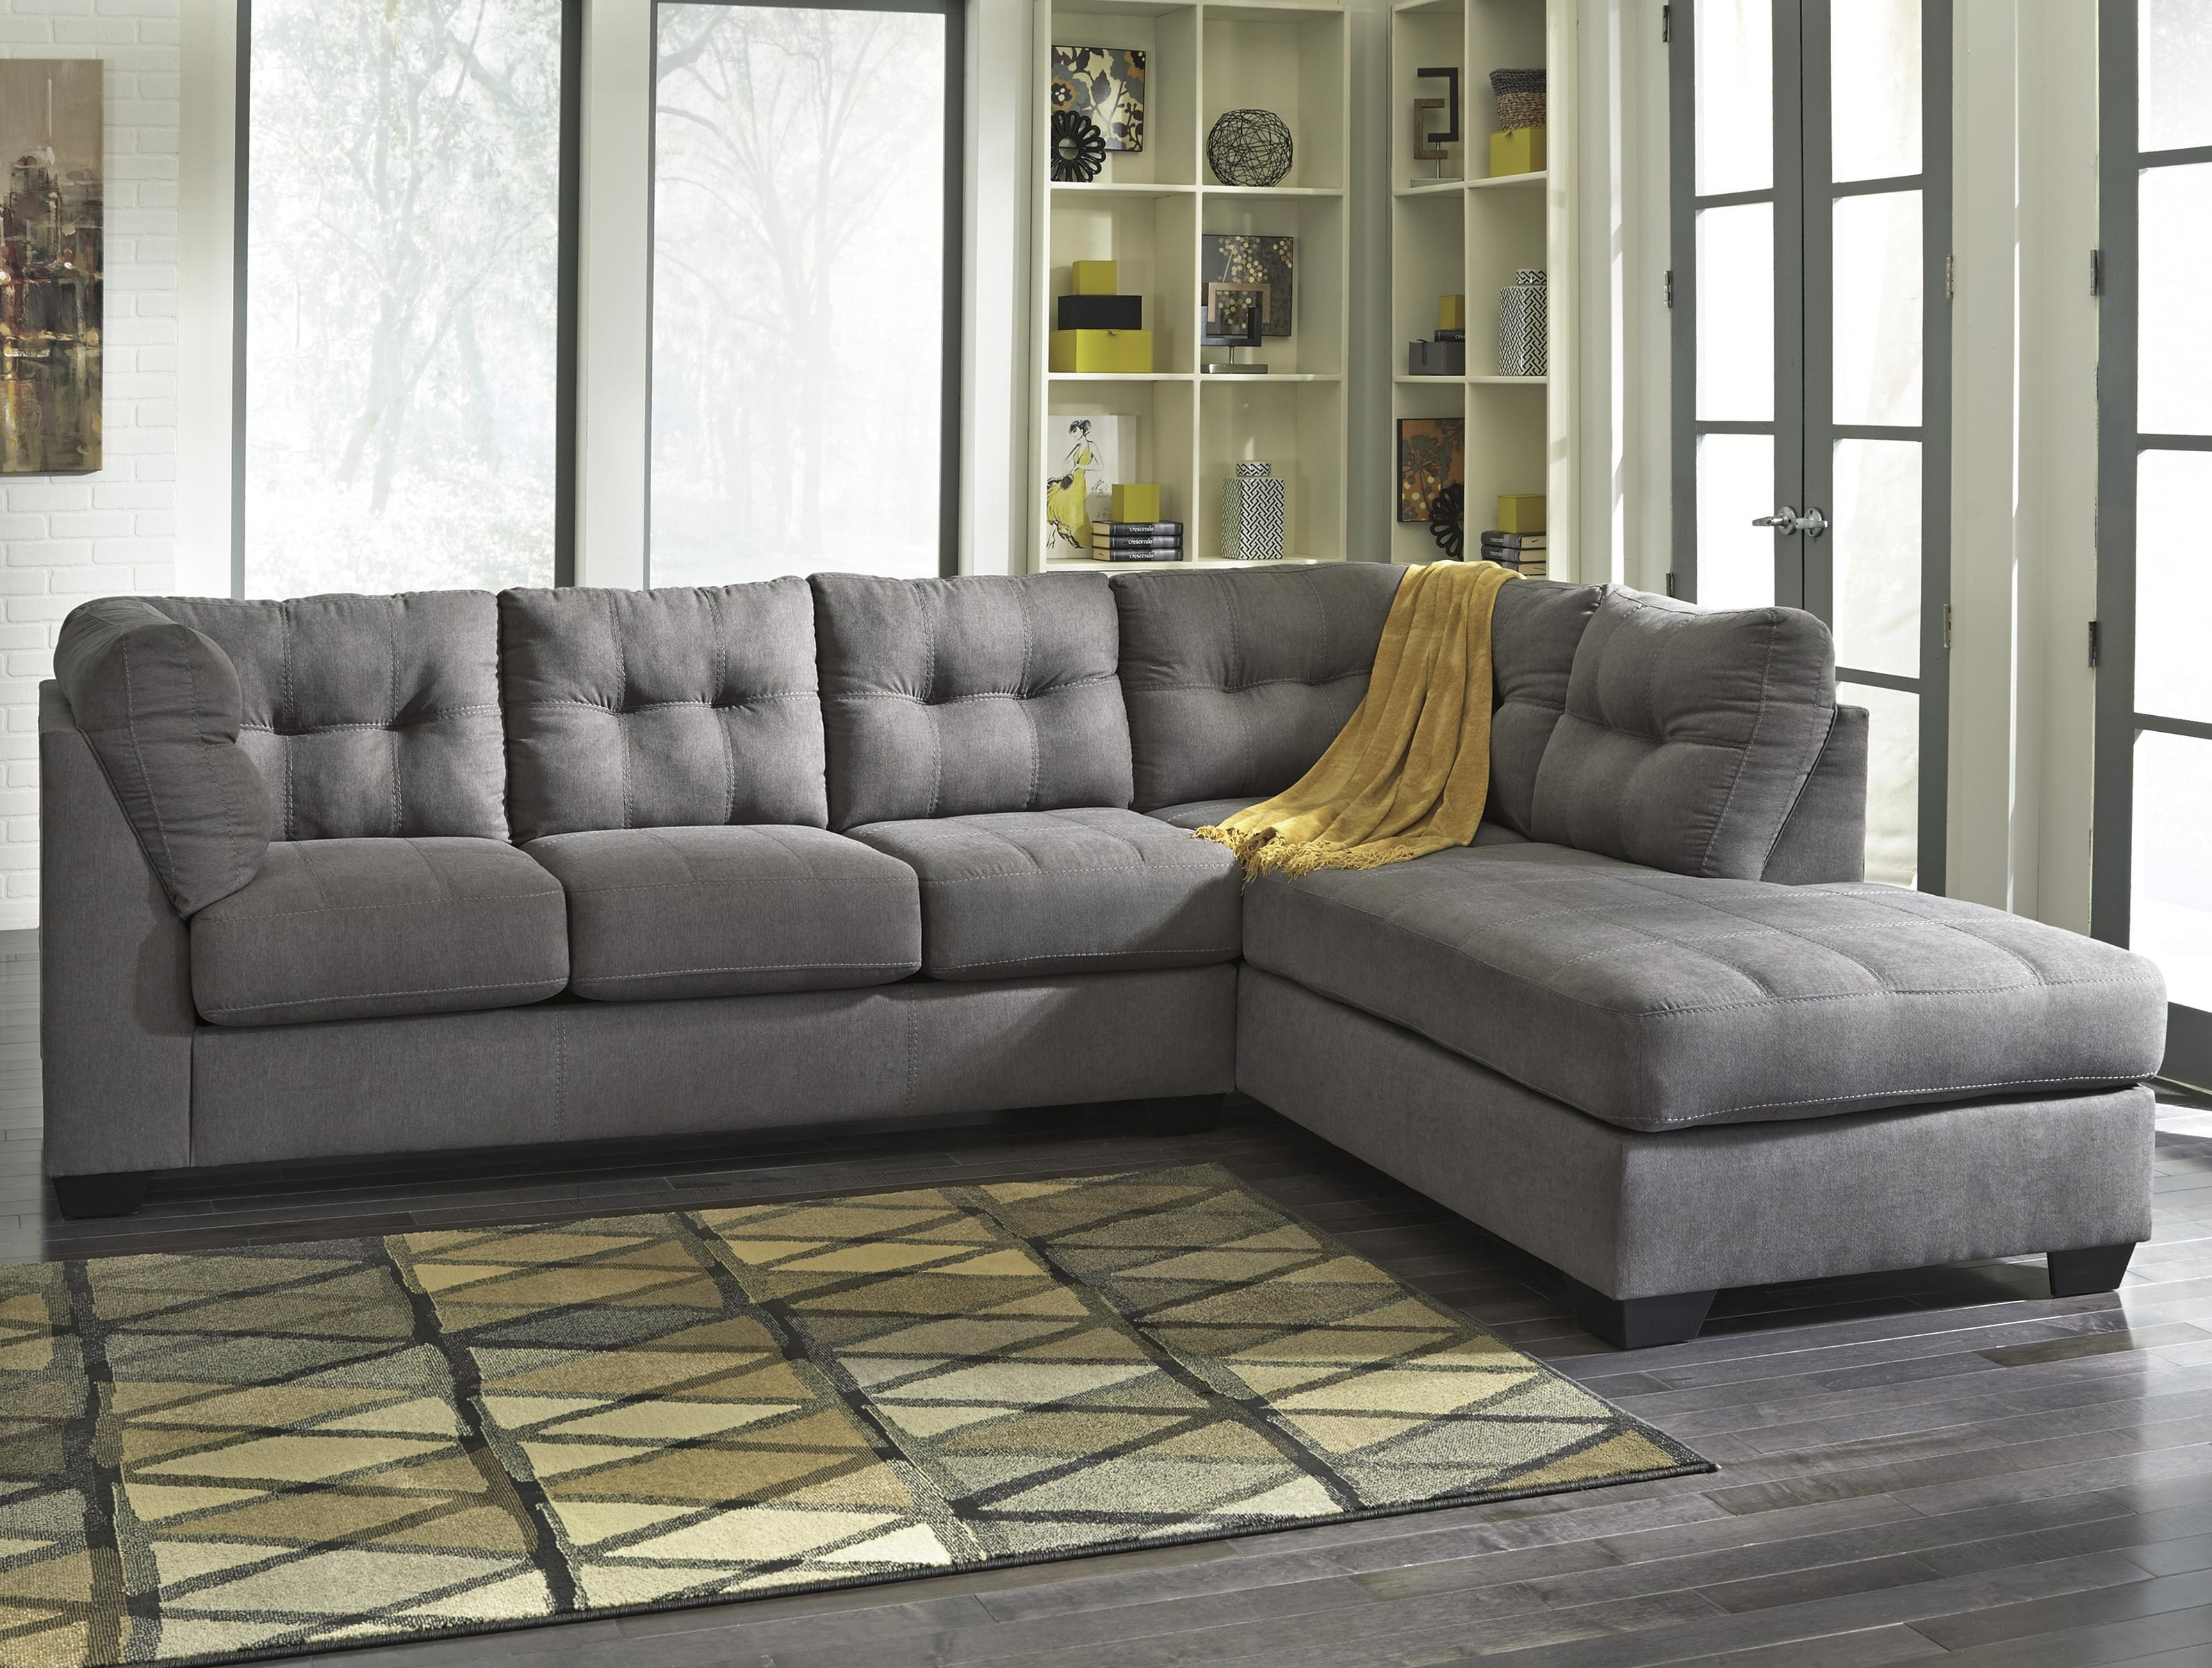 Benchcraft Maier – Charcoal 2 Piece Sectional W/ Sleeper Sofa In Newest Sectional Sofas With 2 Chaises (View 2 of 15)